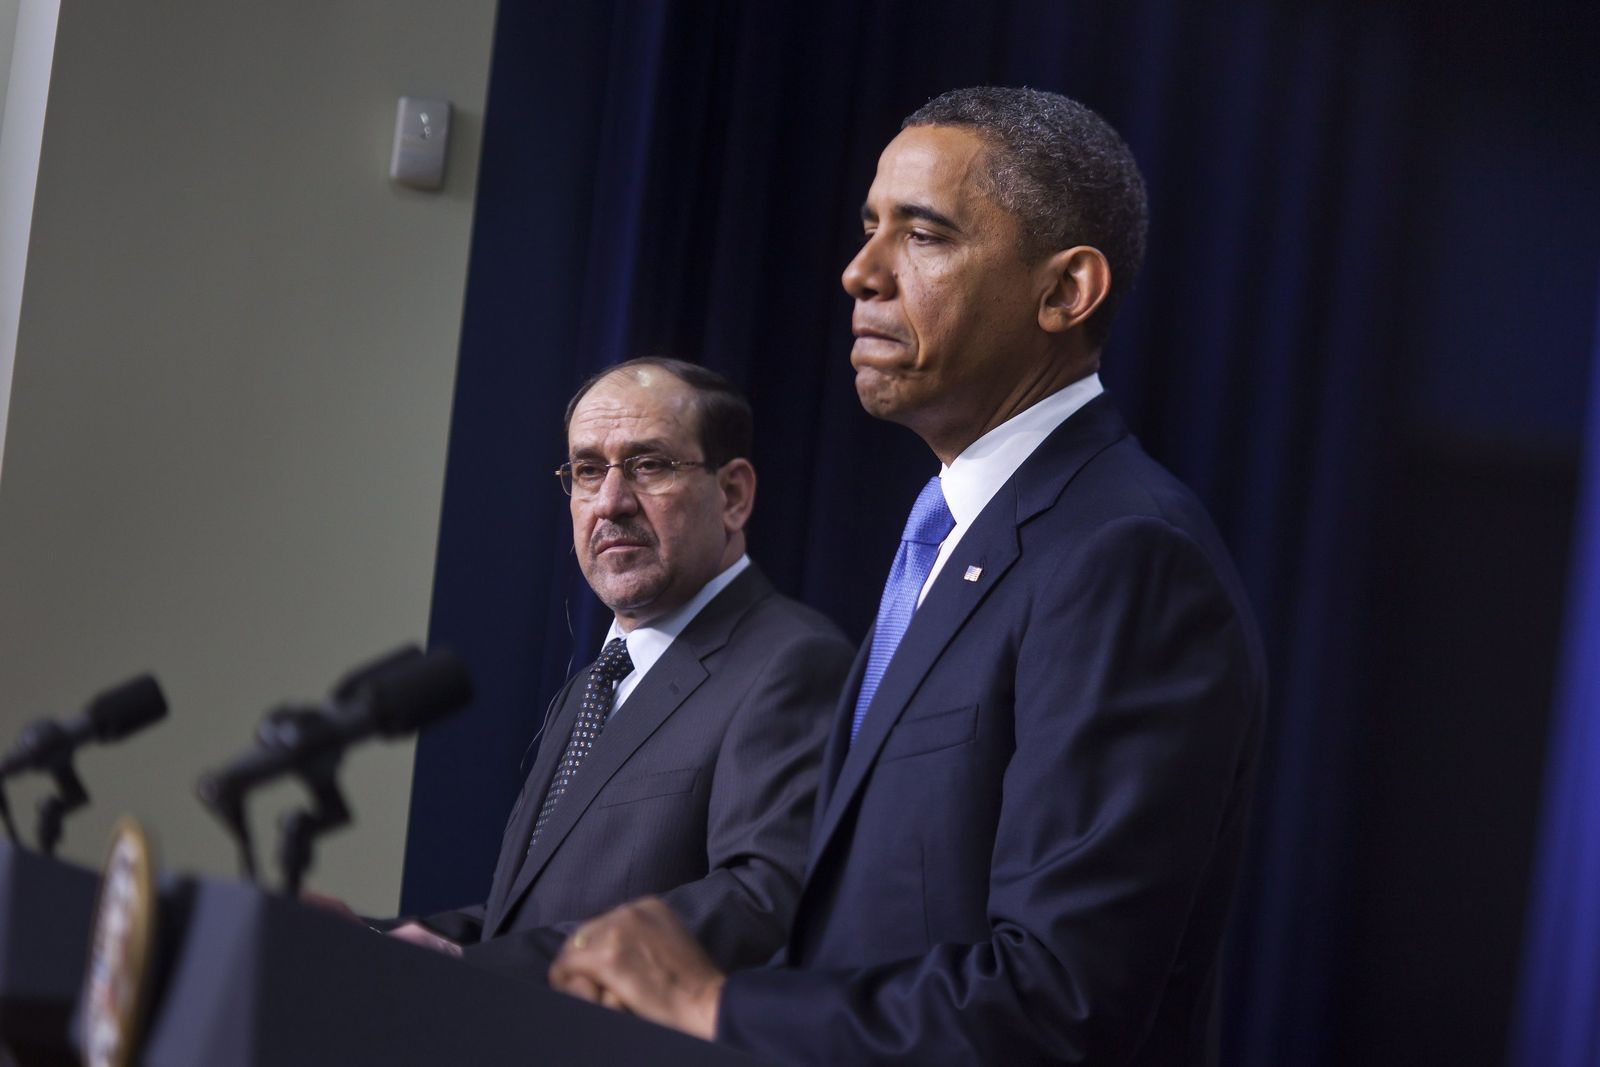 President Obama Holds Press Conference With al-Maliki in Washingt